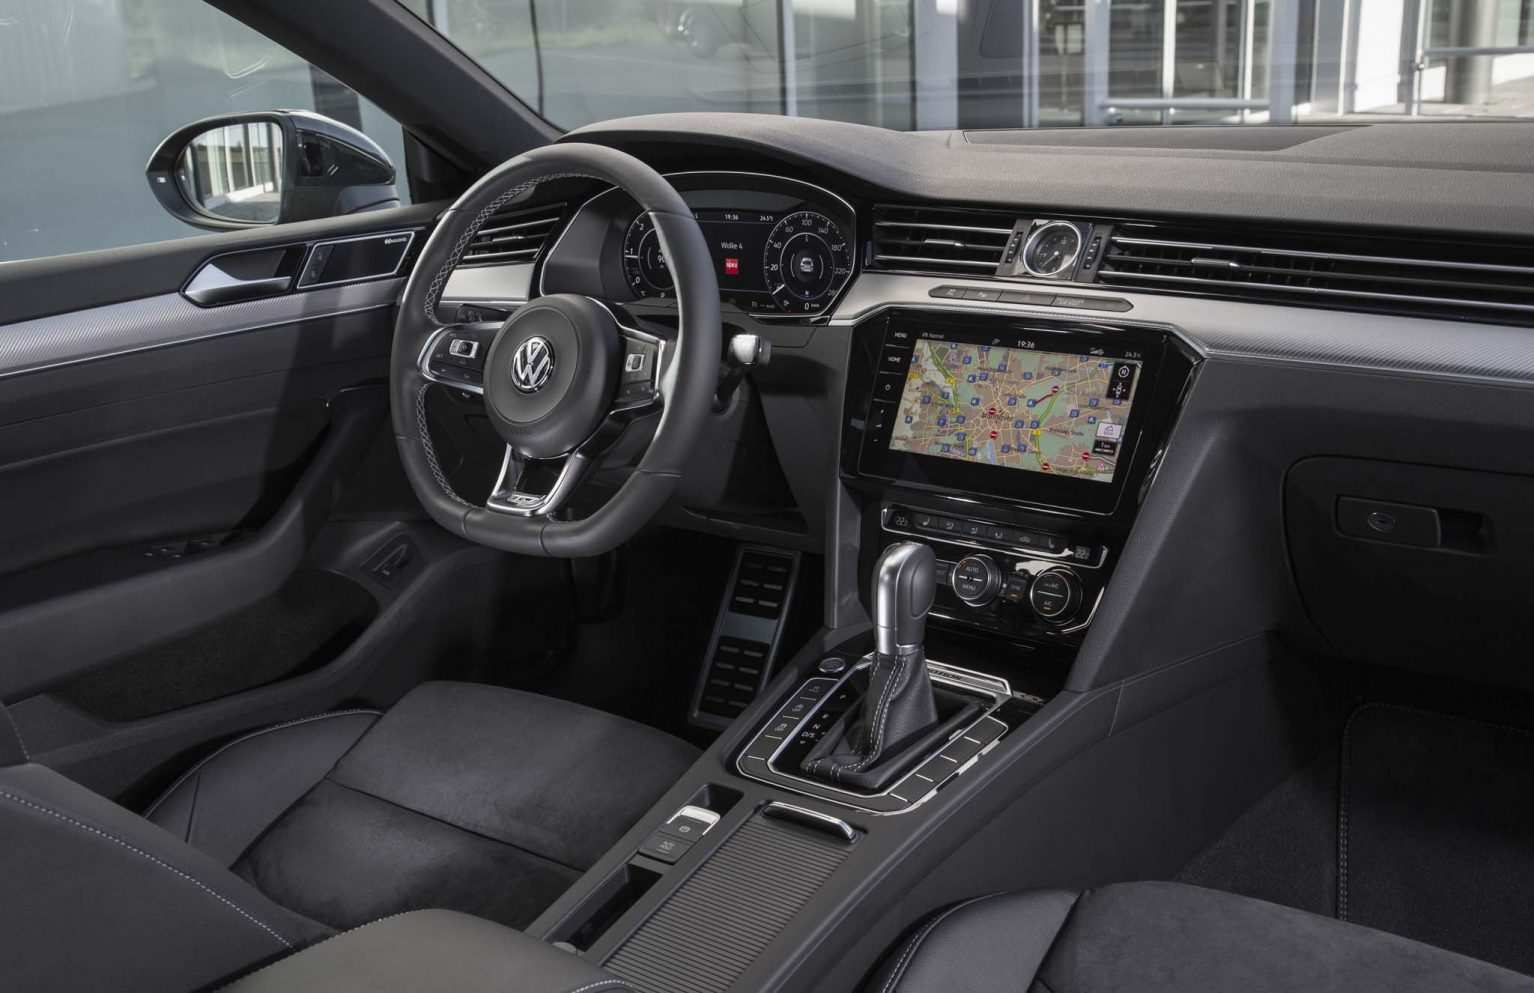 89 All New 2019 Volkswagen Passat Interior Exterior and Interior with 2019 Volkswagen Passat Interior